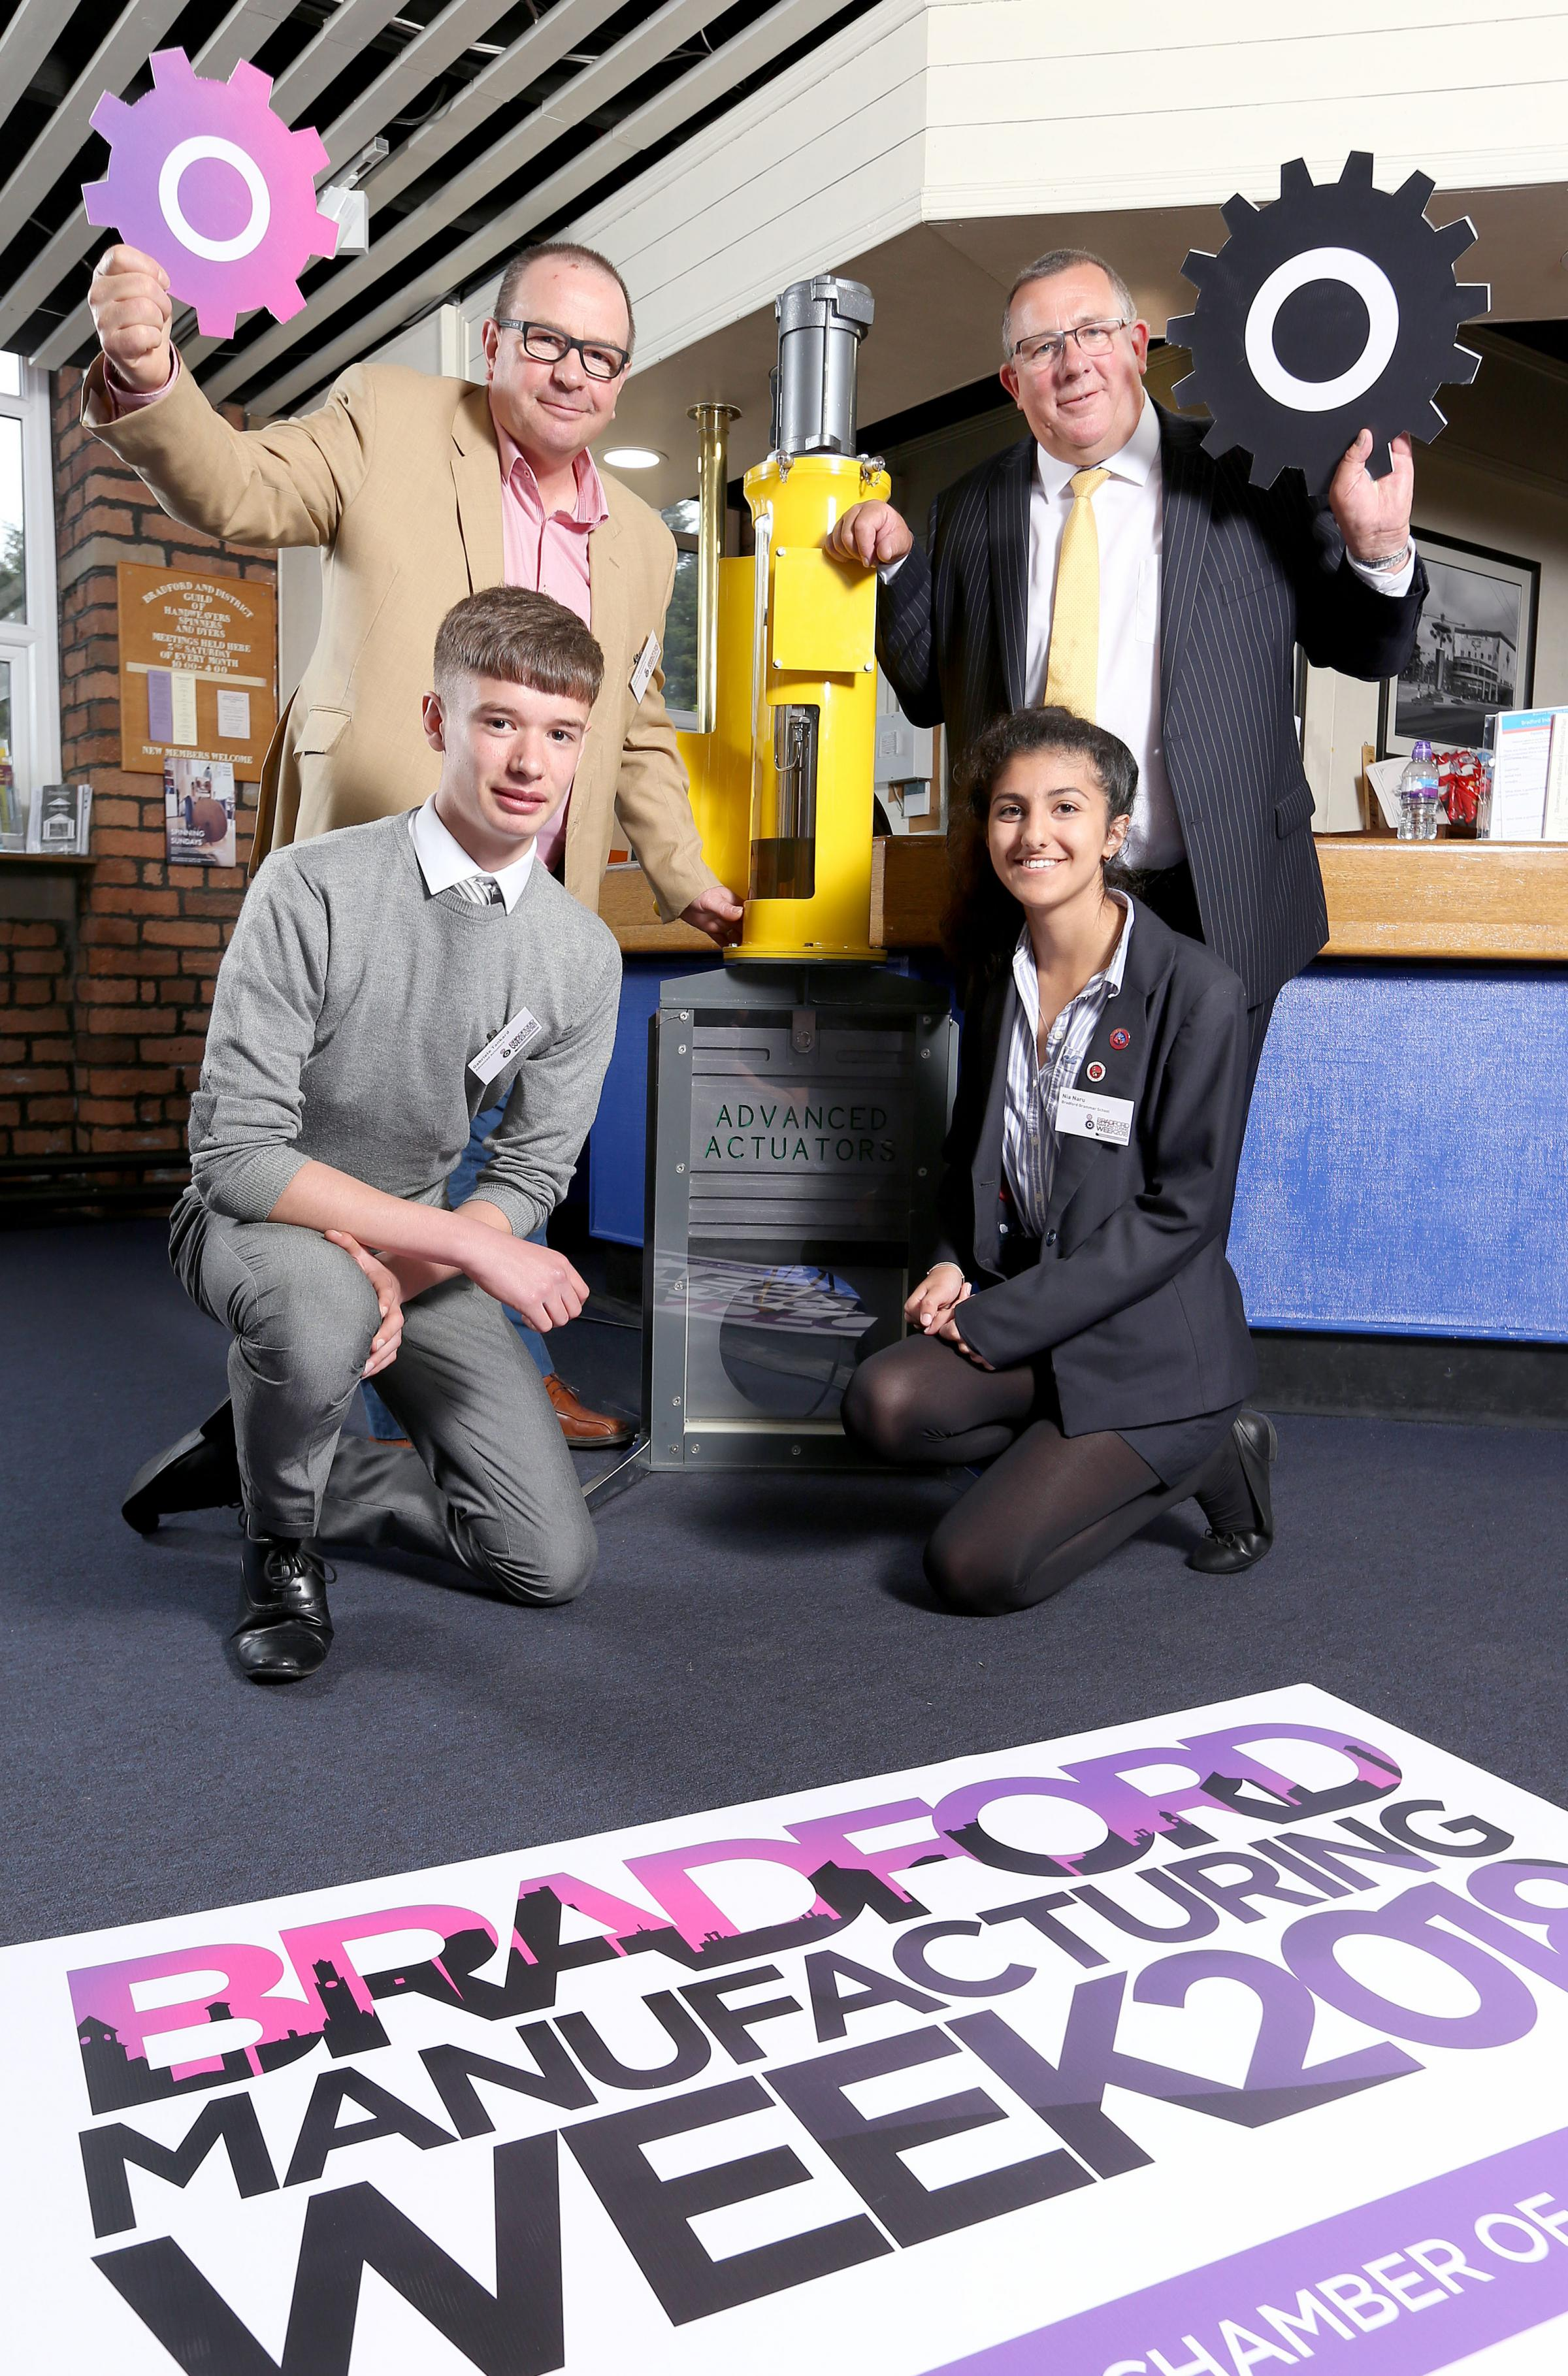 Chris Woodhead of Advanced Actuators and Nick Garthwaite of Christeyns with students Gabrielle Tankard and Nia Naru